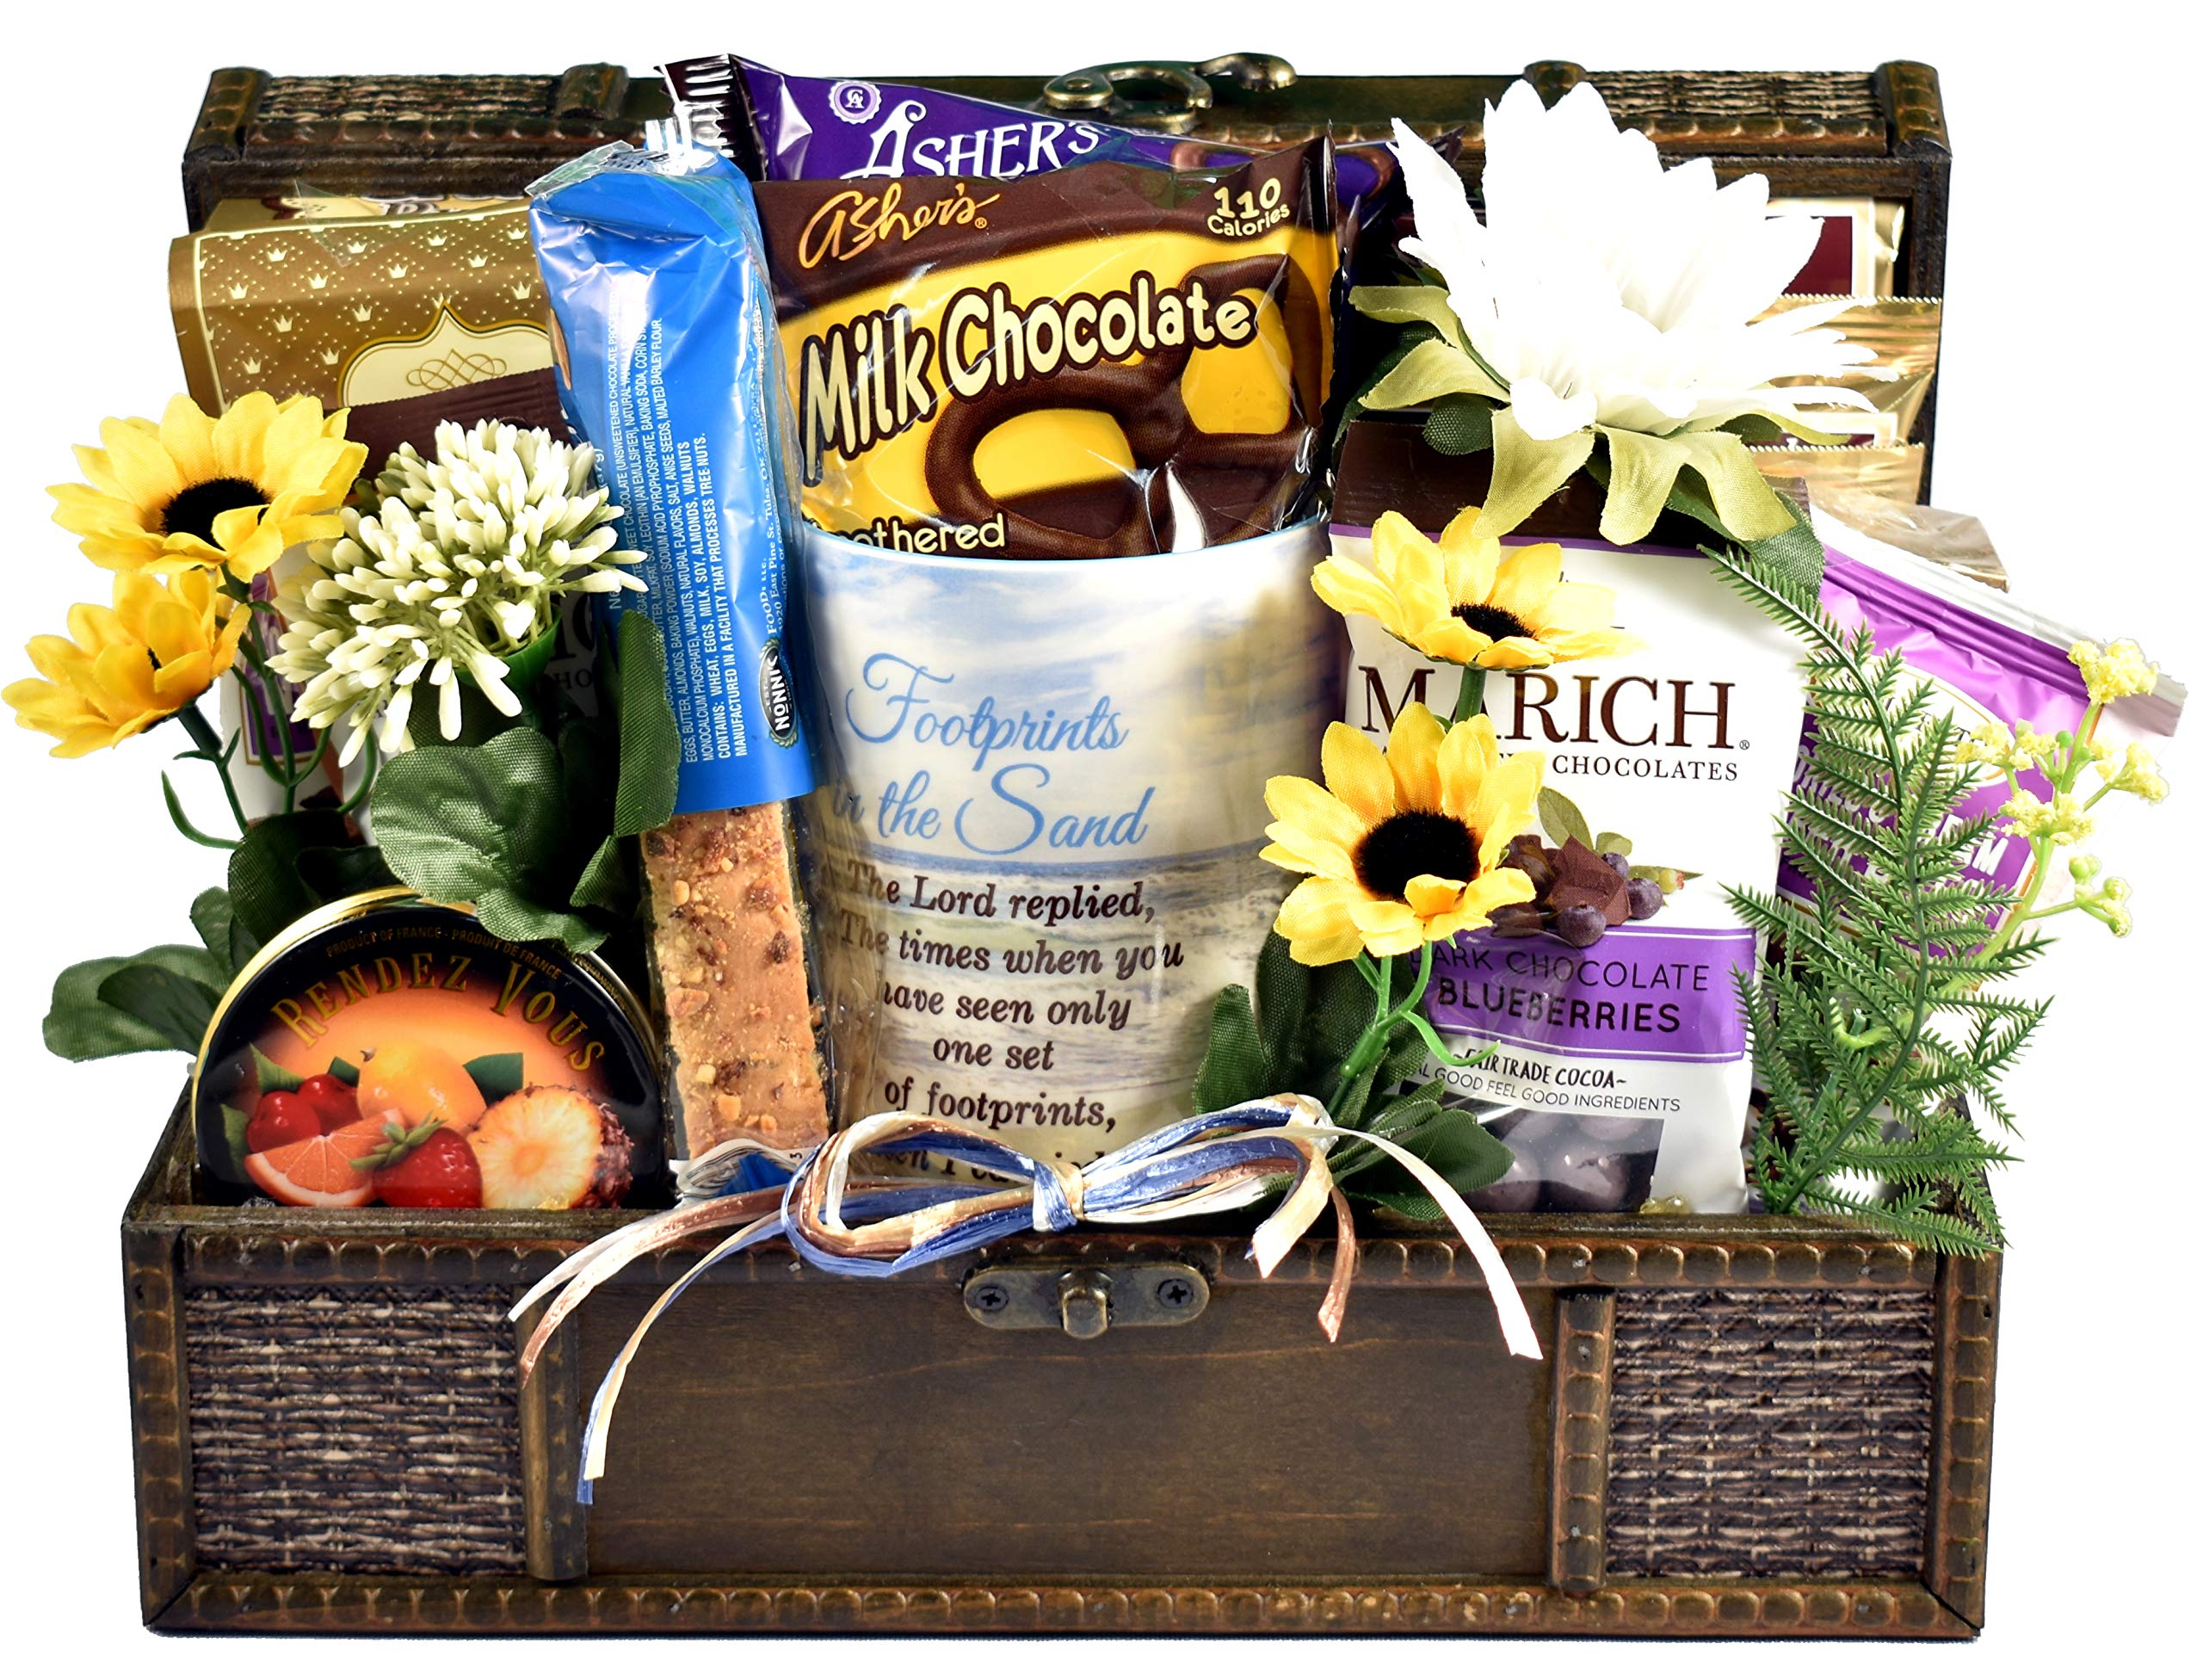 Gift Basket Village - Peace Be With You, An Uplifting Christian Gift Basket To Express Sympathy or Get Well Wishes